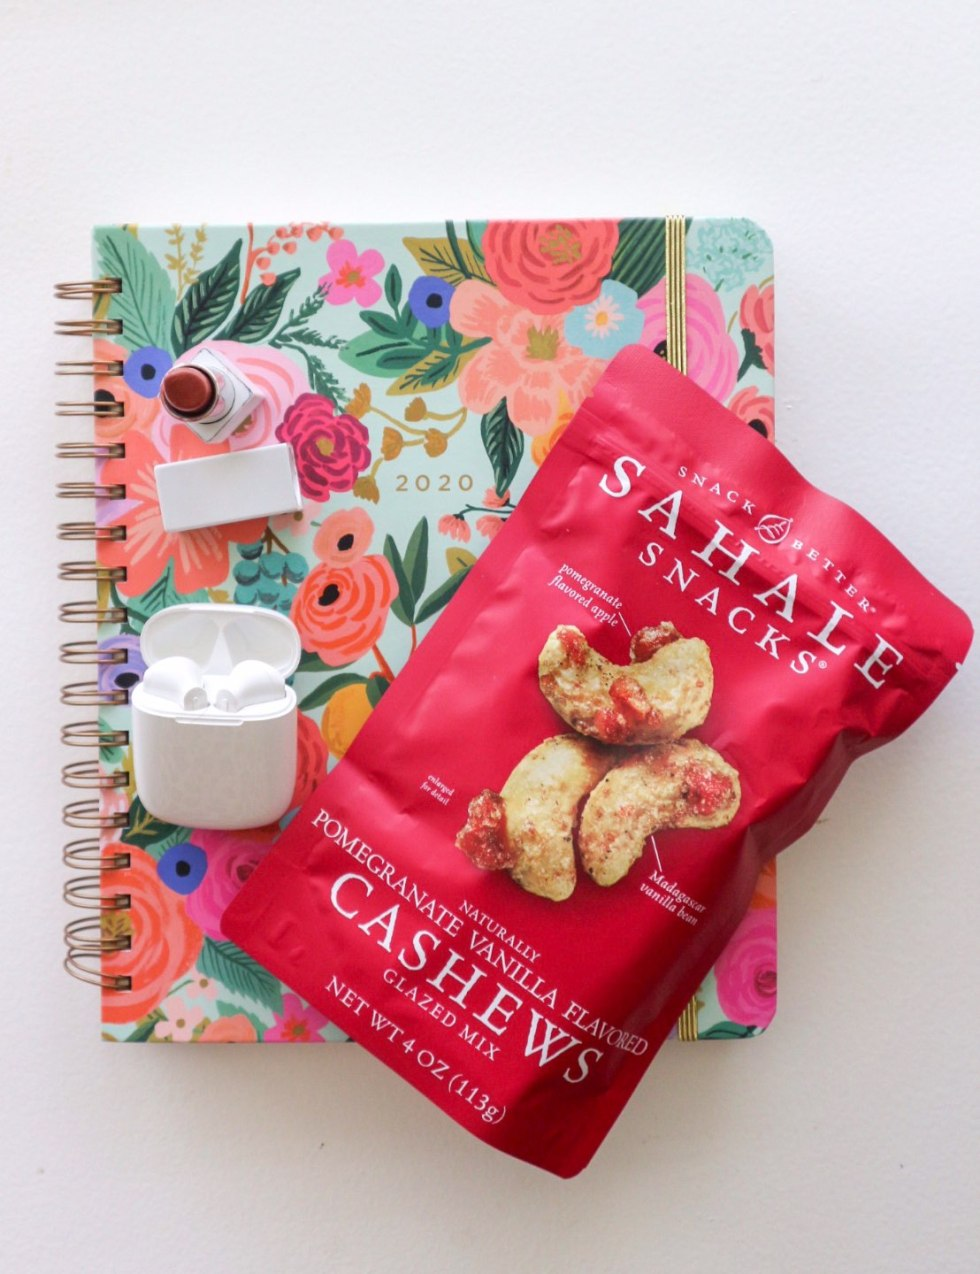 Quick Snack Ideas When You're On the Go by popular NC life and style blogger, I'm Fixin' To: image of a Rifle Paper Co. Planner, lipstick, airpods, and a bag of Sahale Snacks Pomegranate Vanilla Flavored Cashews.